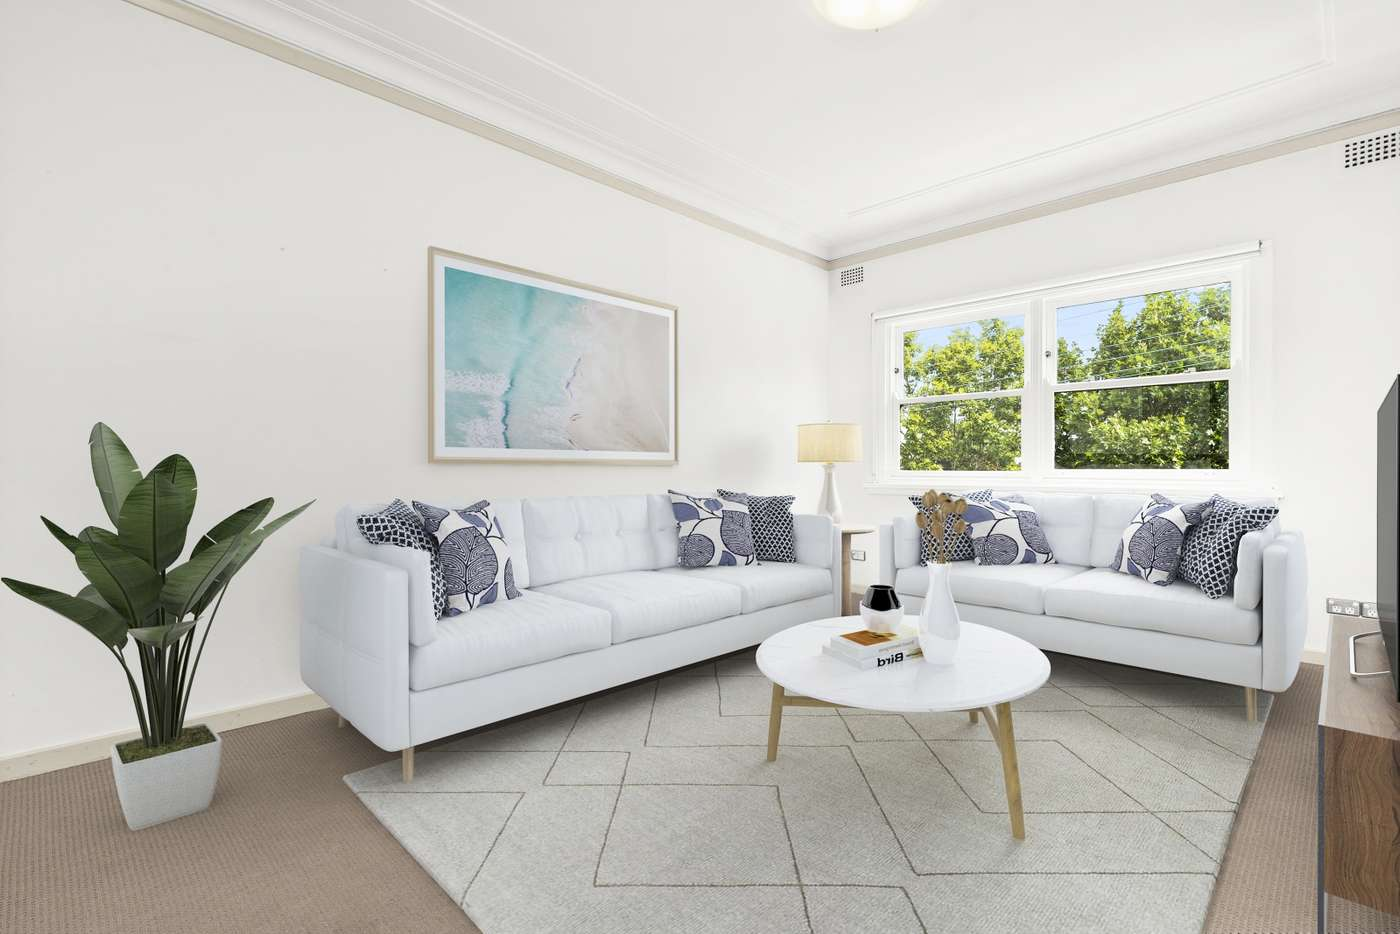 Main view of Homely apartment listing, 5/10A Yeo Street, Neutral Bay NSW 2089